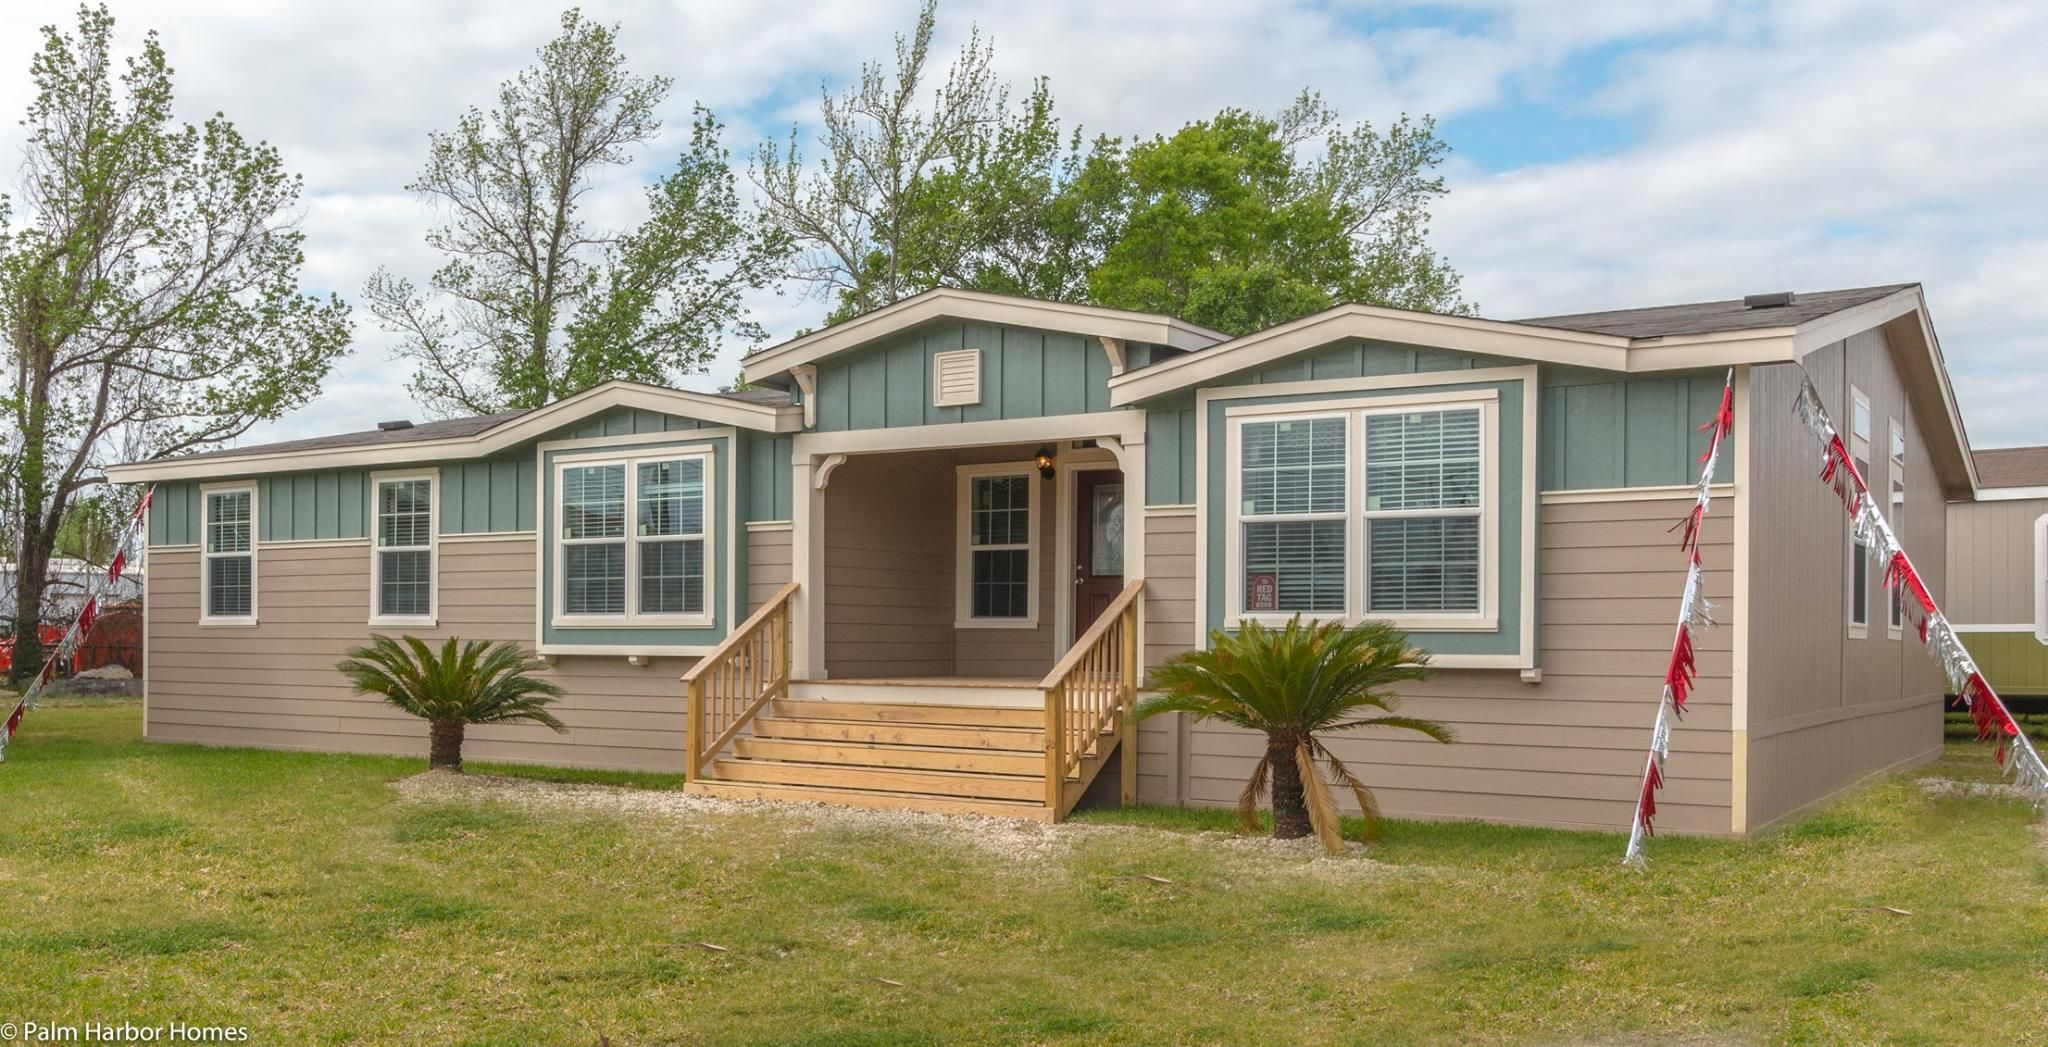 Housing Mobile Modular Palm Harbor Home Doublewide Model